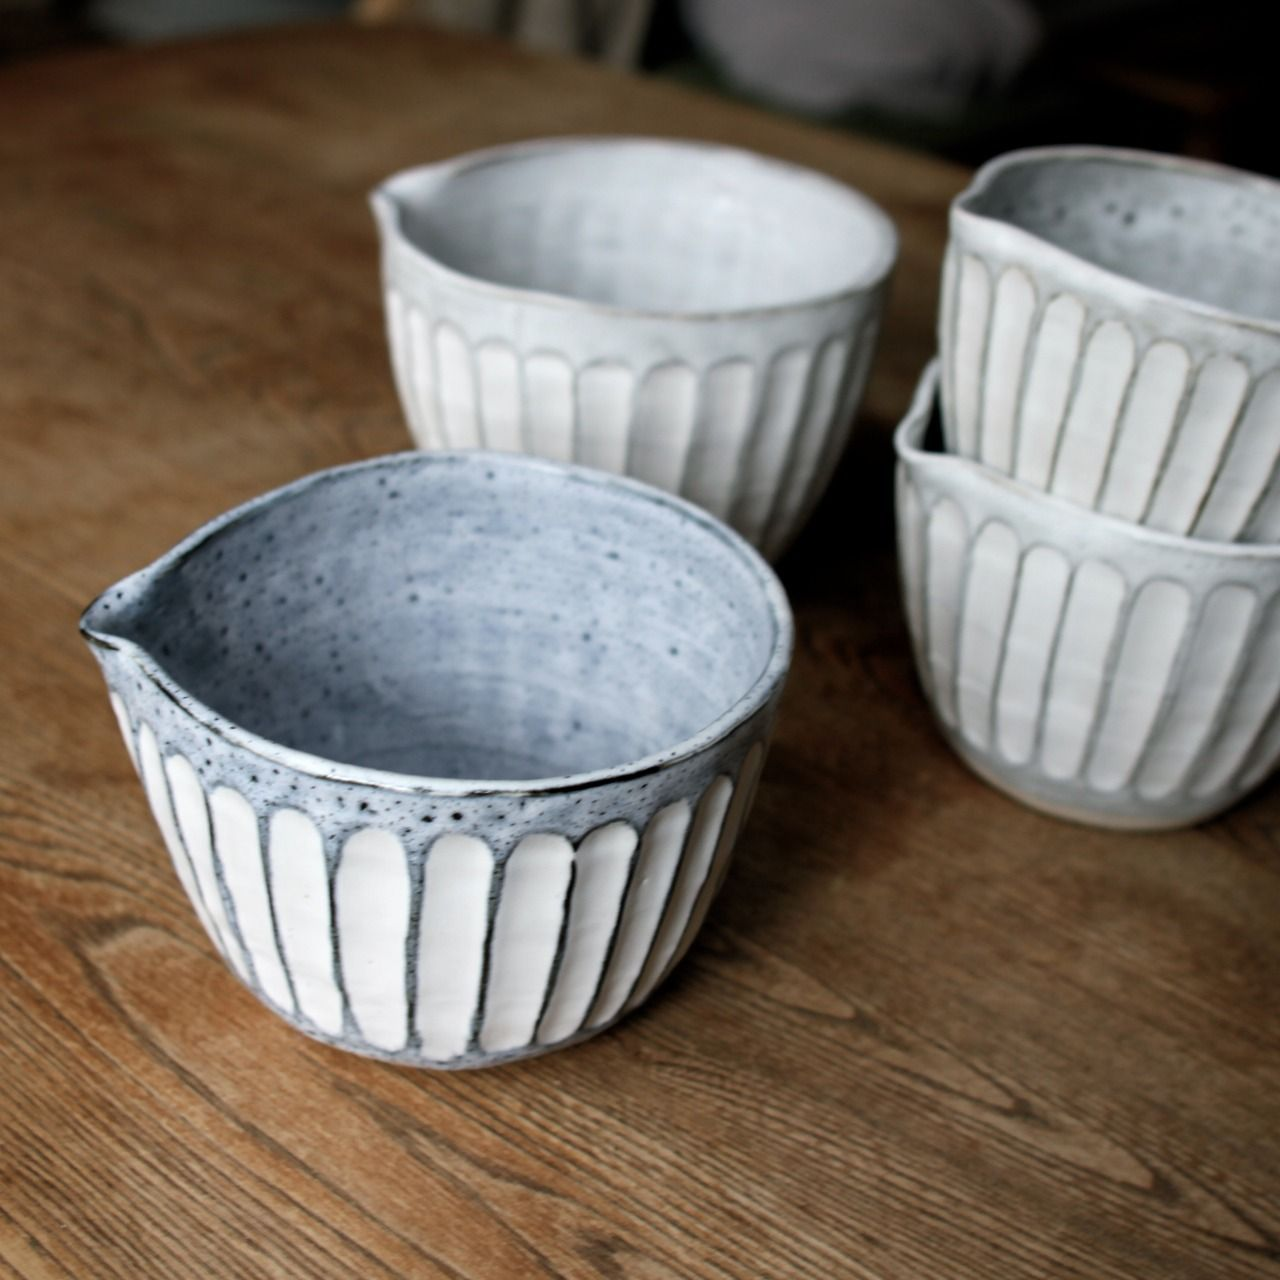 Faceted Pouring Bowls Slab Coil Built In White Stoneware Decorated With Black Slip Under A Frost White Glaze Varying Sizes From 15cm In Heig Pottery Potte